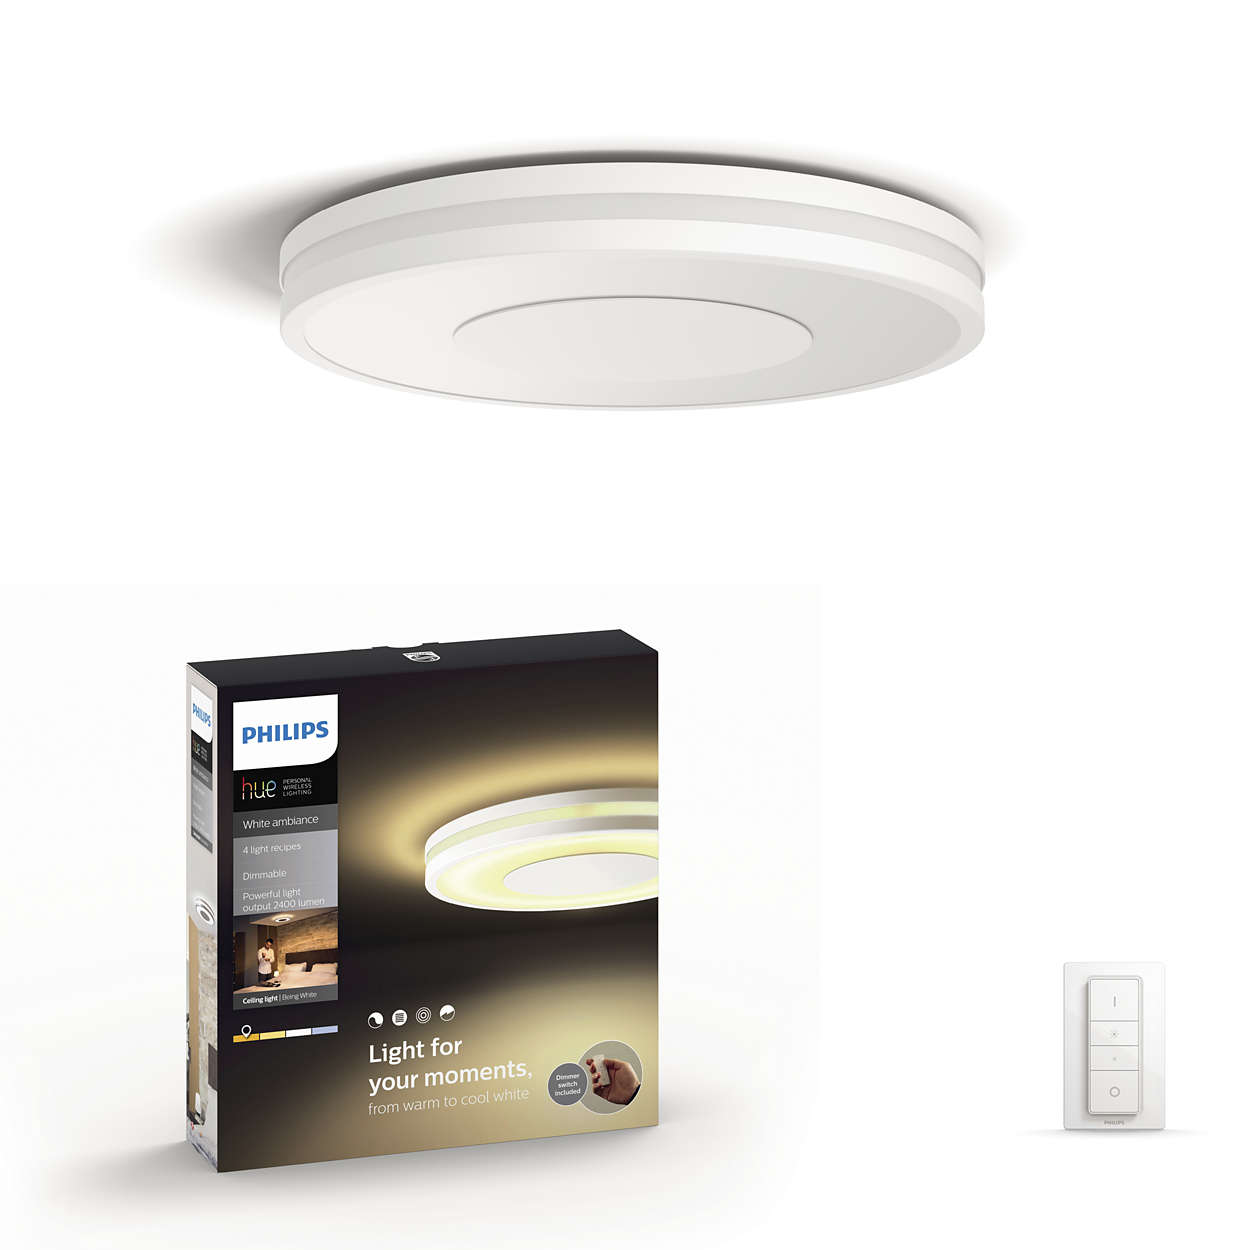 Light for your moments